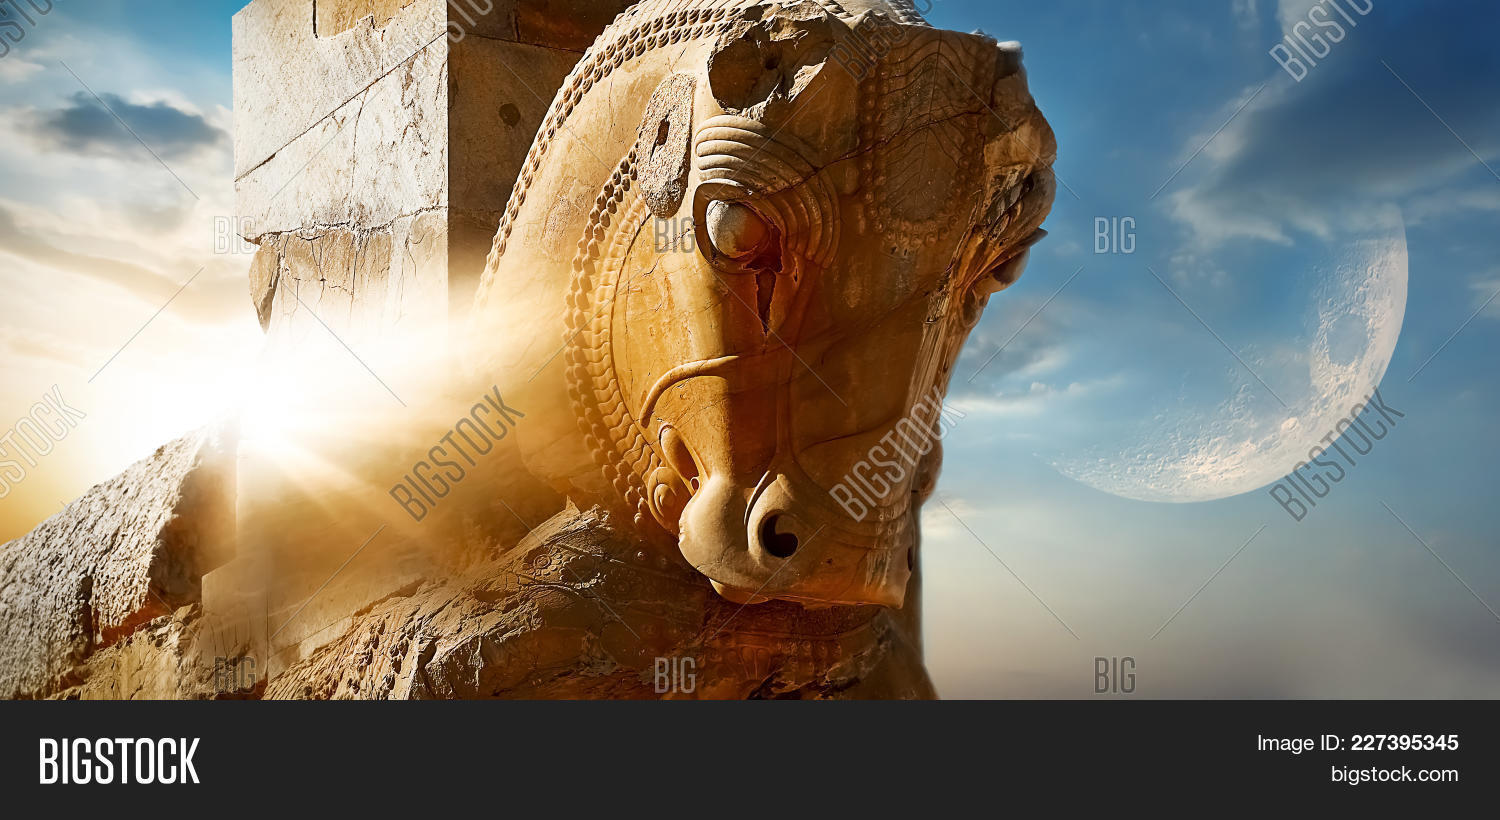 Fragment Of The Statue Of A Horse In Ancient Persepolis Against The Background Of The Sun And The Mo 227395345 Image Stock Photo